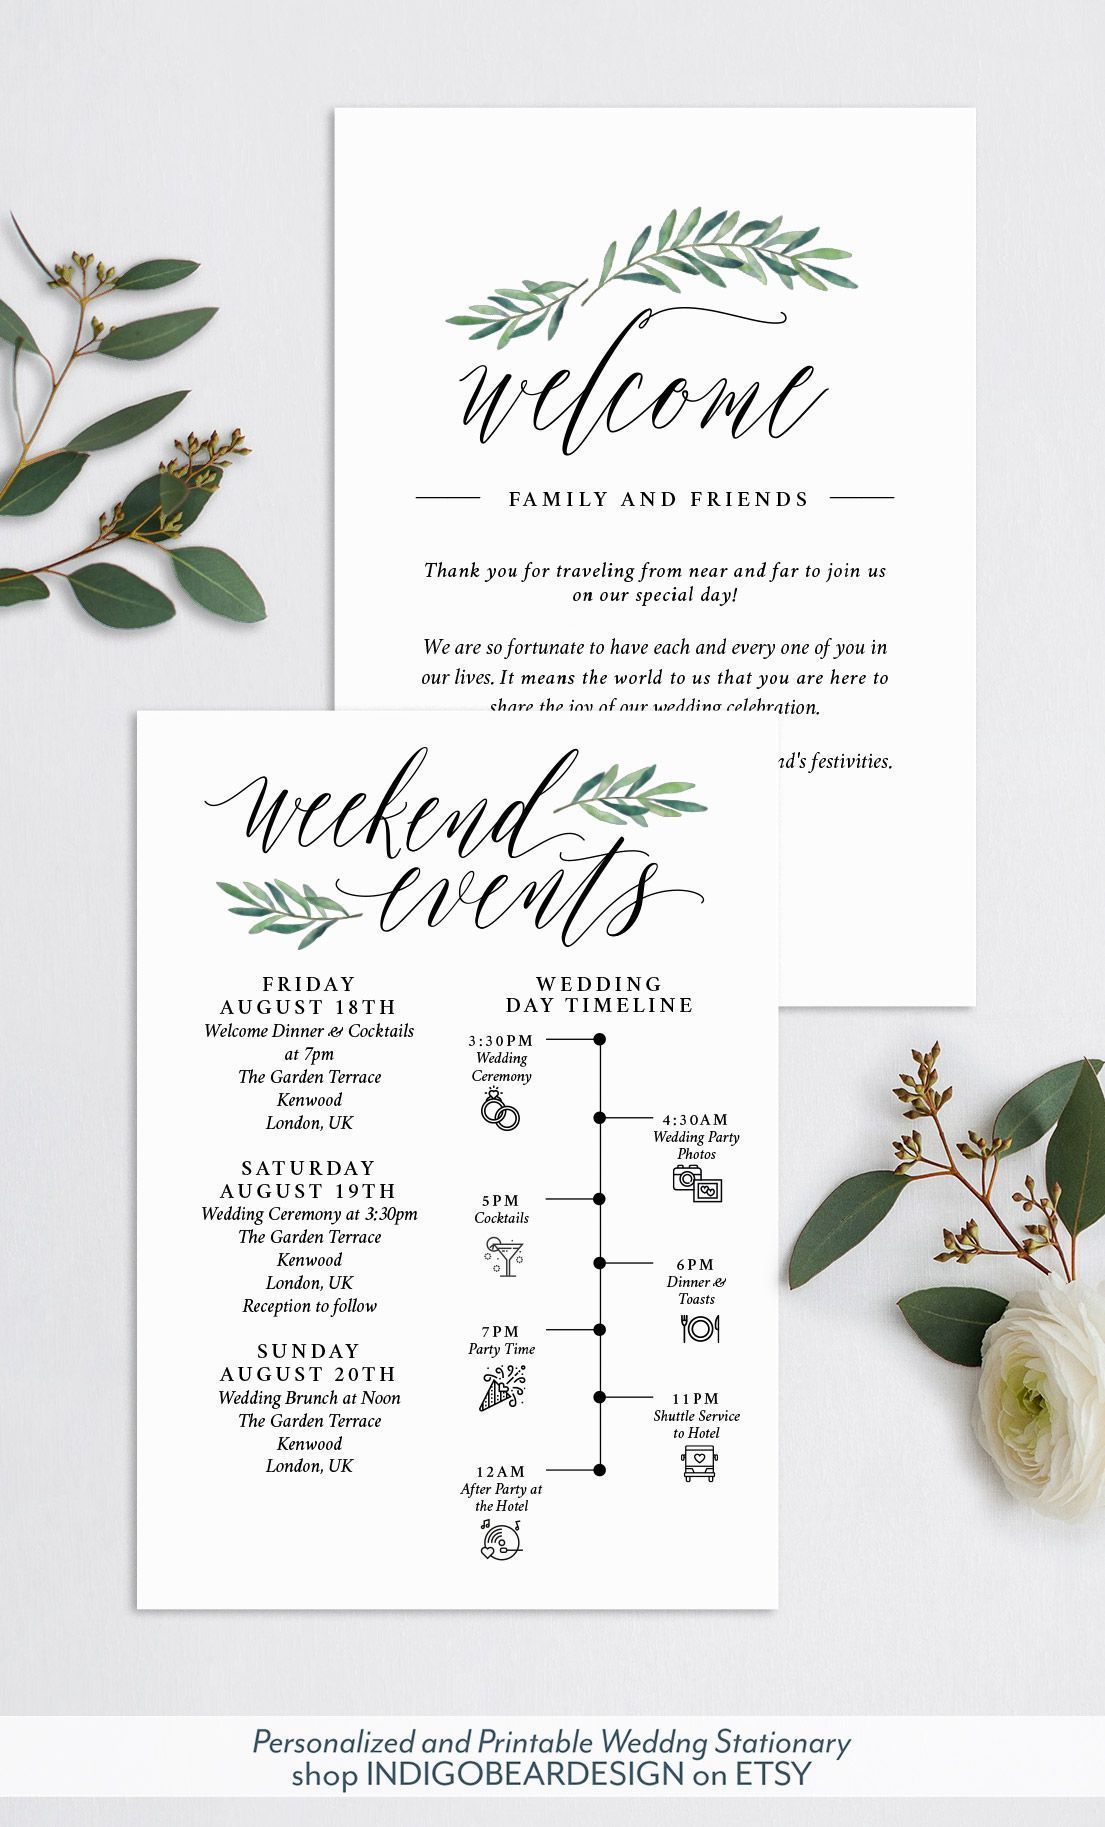 005 Wondrou Destination Wedding Welcome Letter And Itinerary Template High Resolution Full